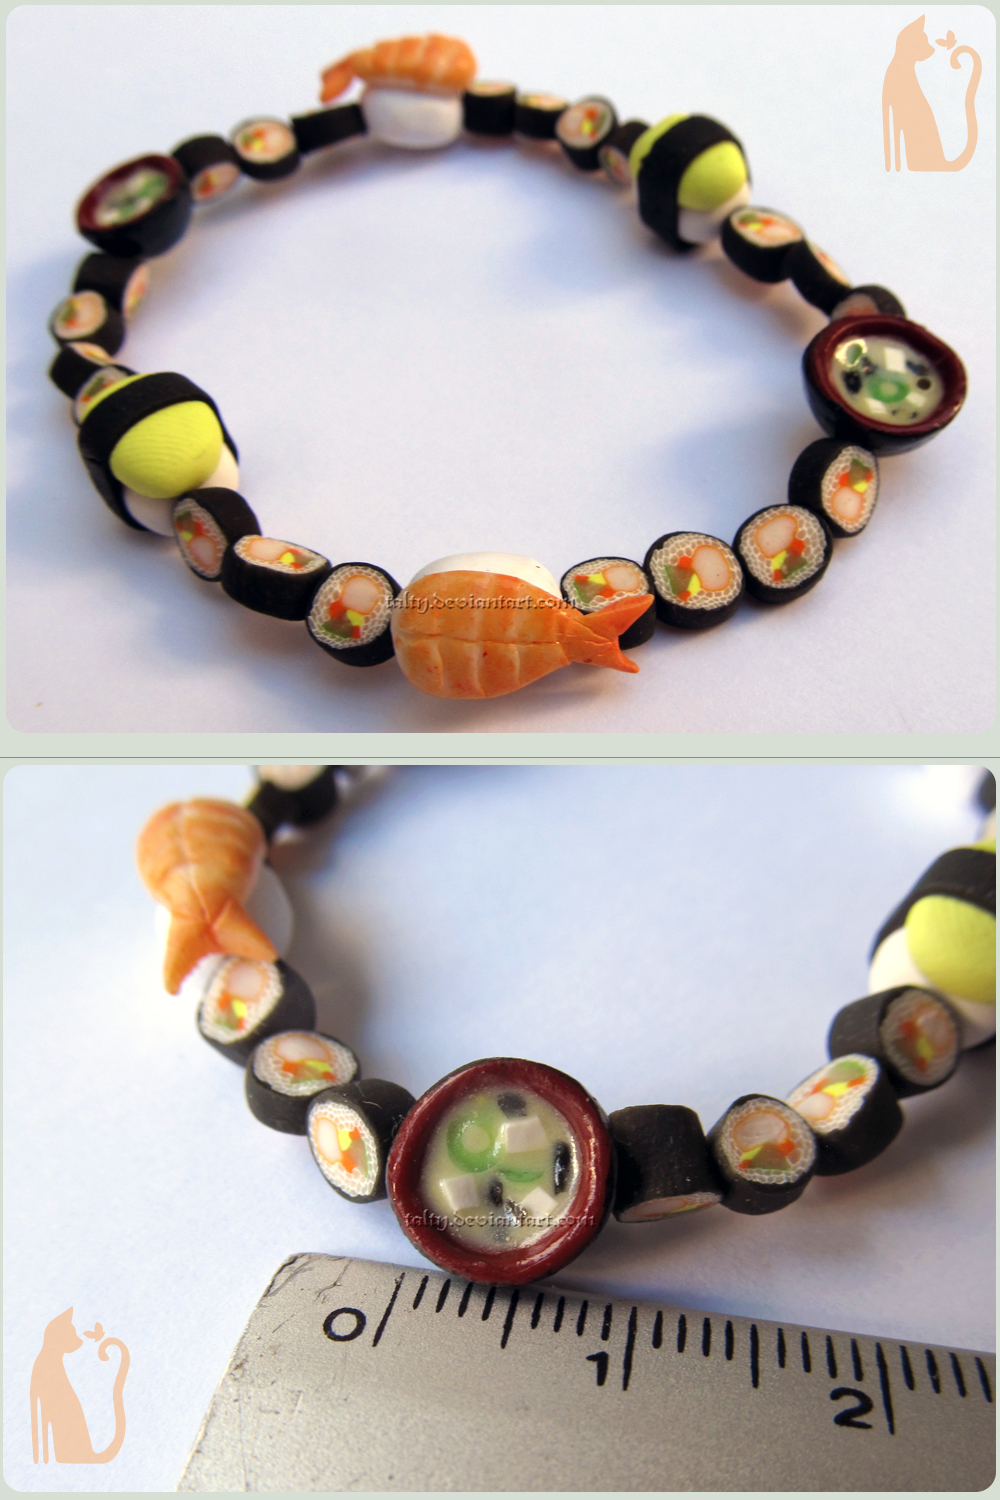 Polymer Clay Bracelet with Ebi, Miso and Tamago by Talty